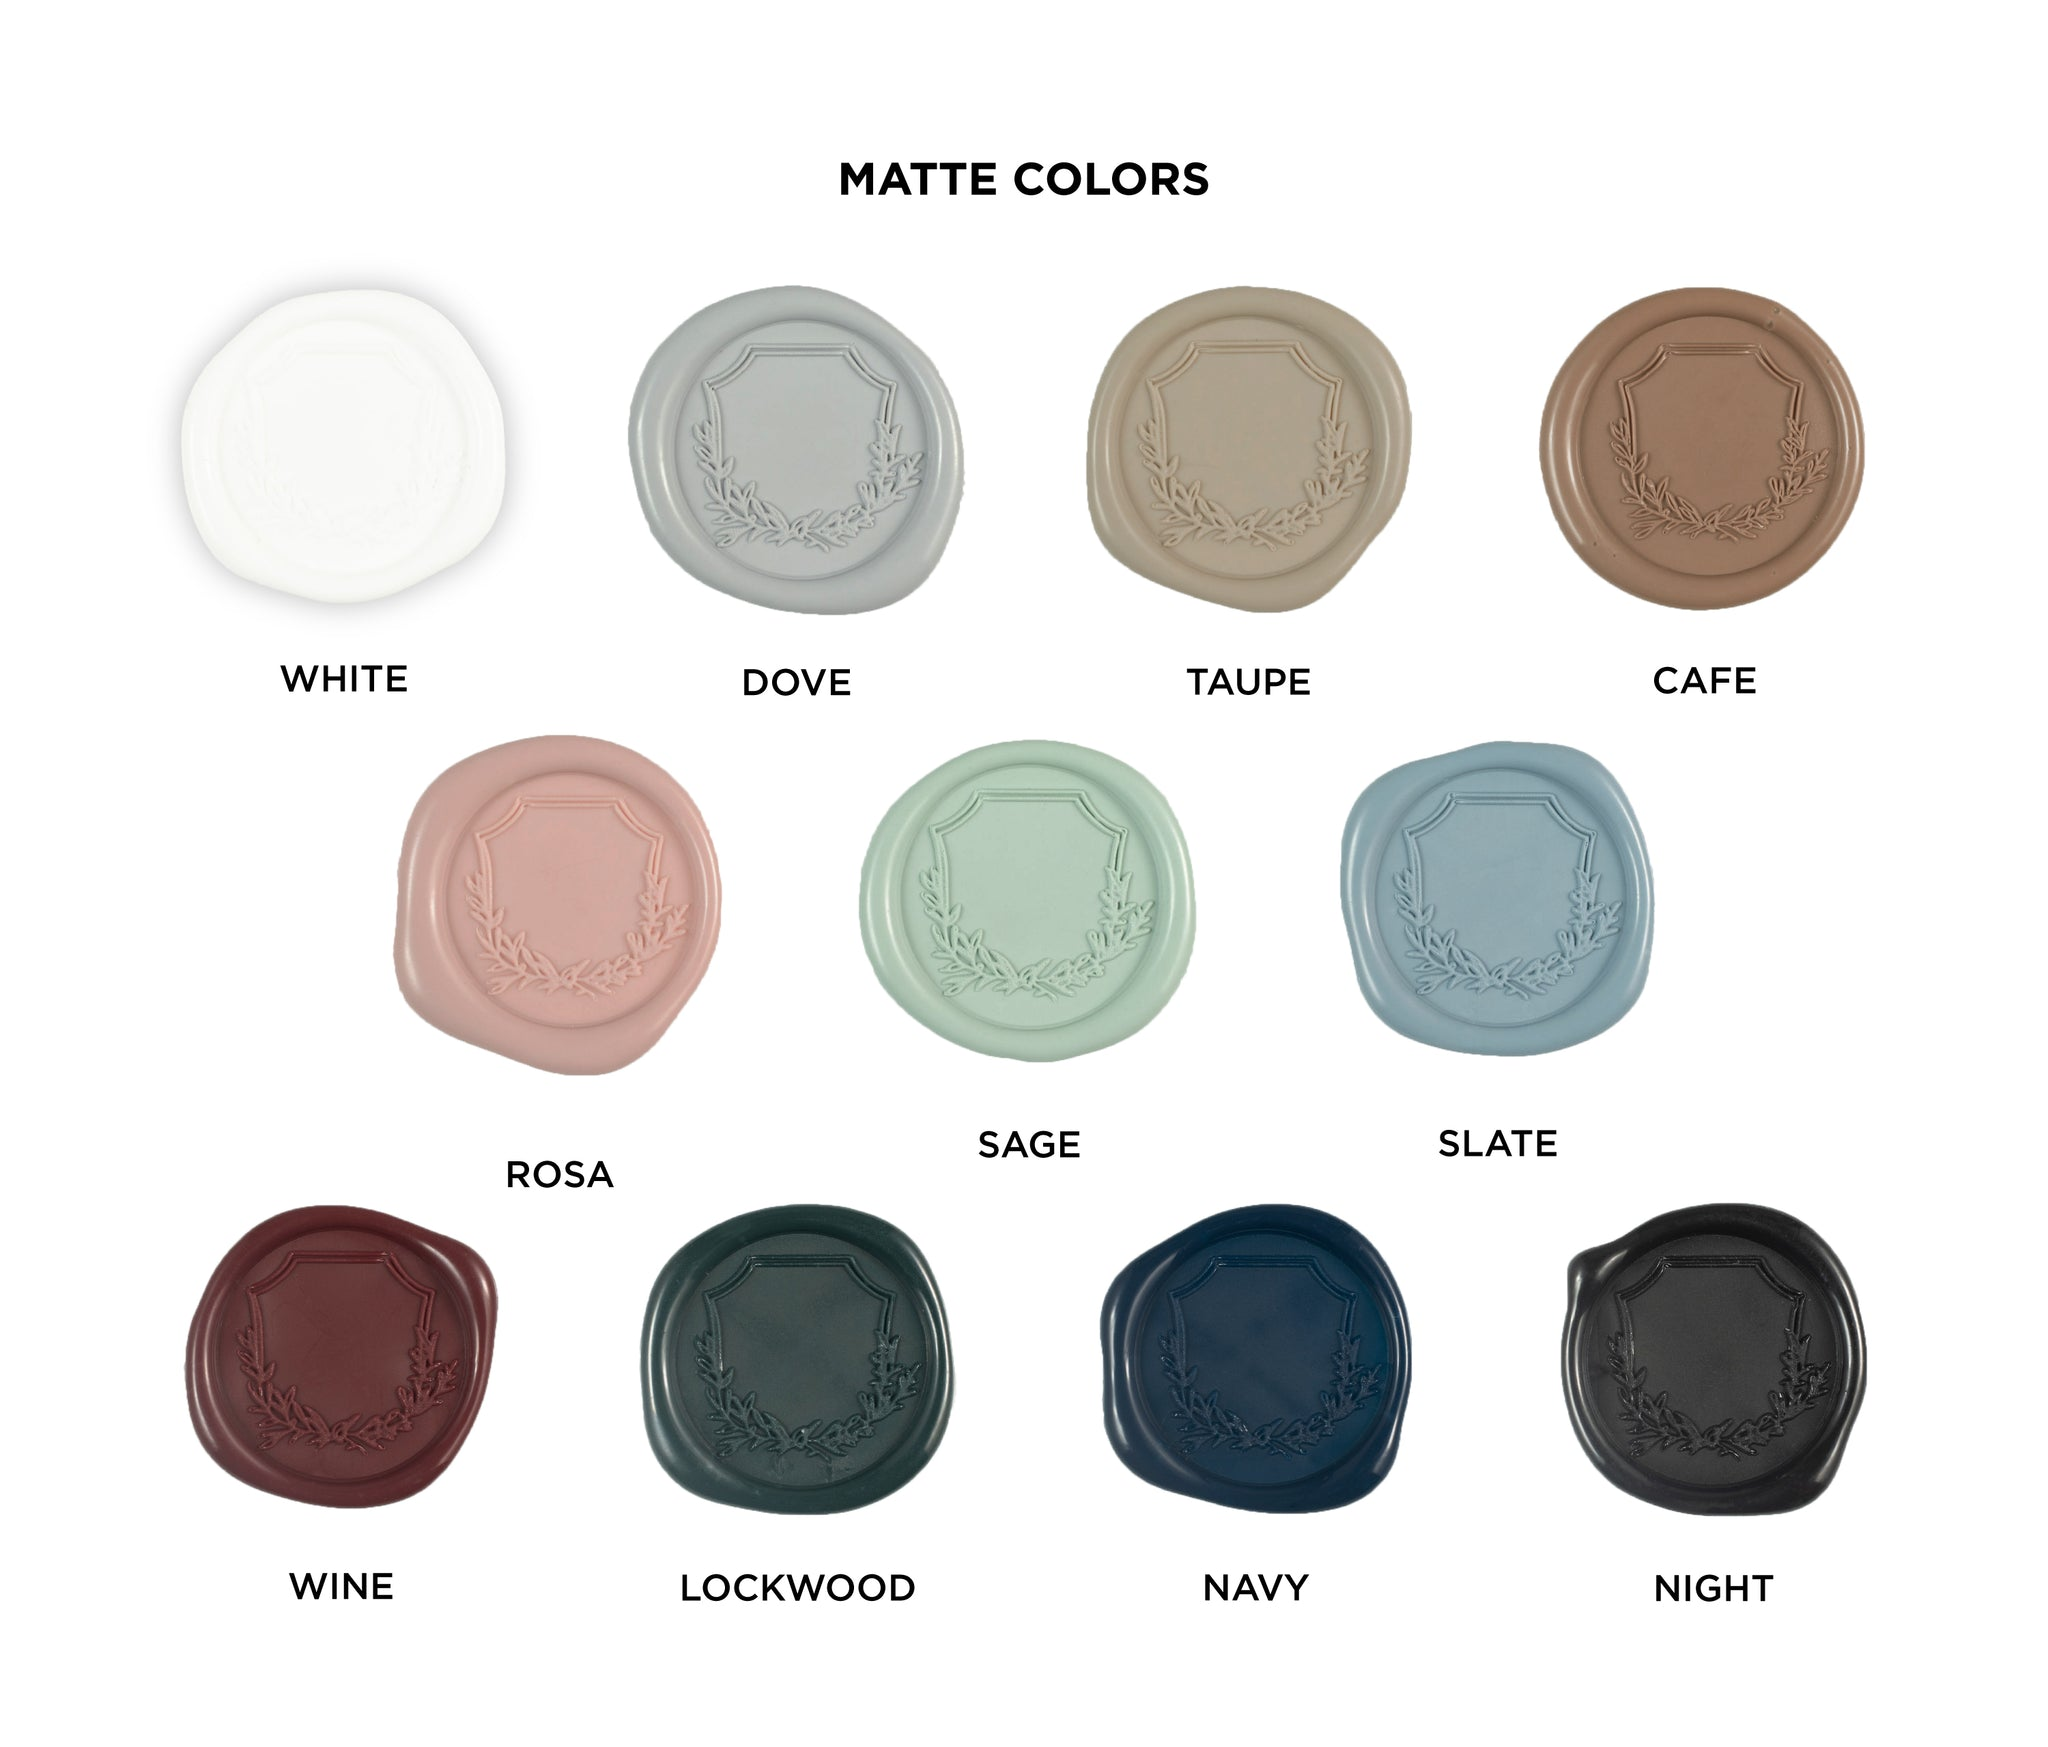 Wax Seal Matte Colors. White, Dove, Taupe, Cafe, Rosa, Sage, Slate, Wine, Lockwood, Navy, Night